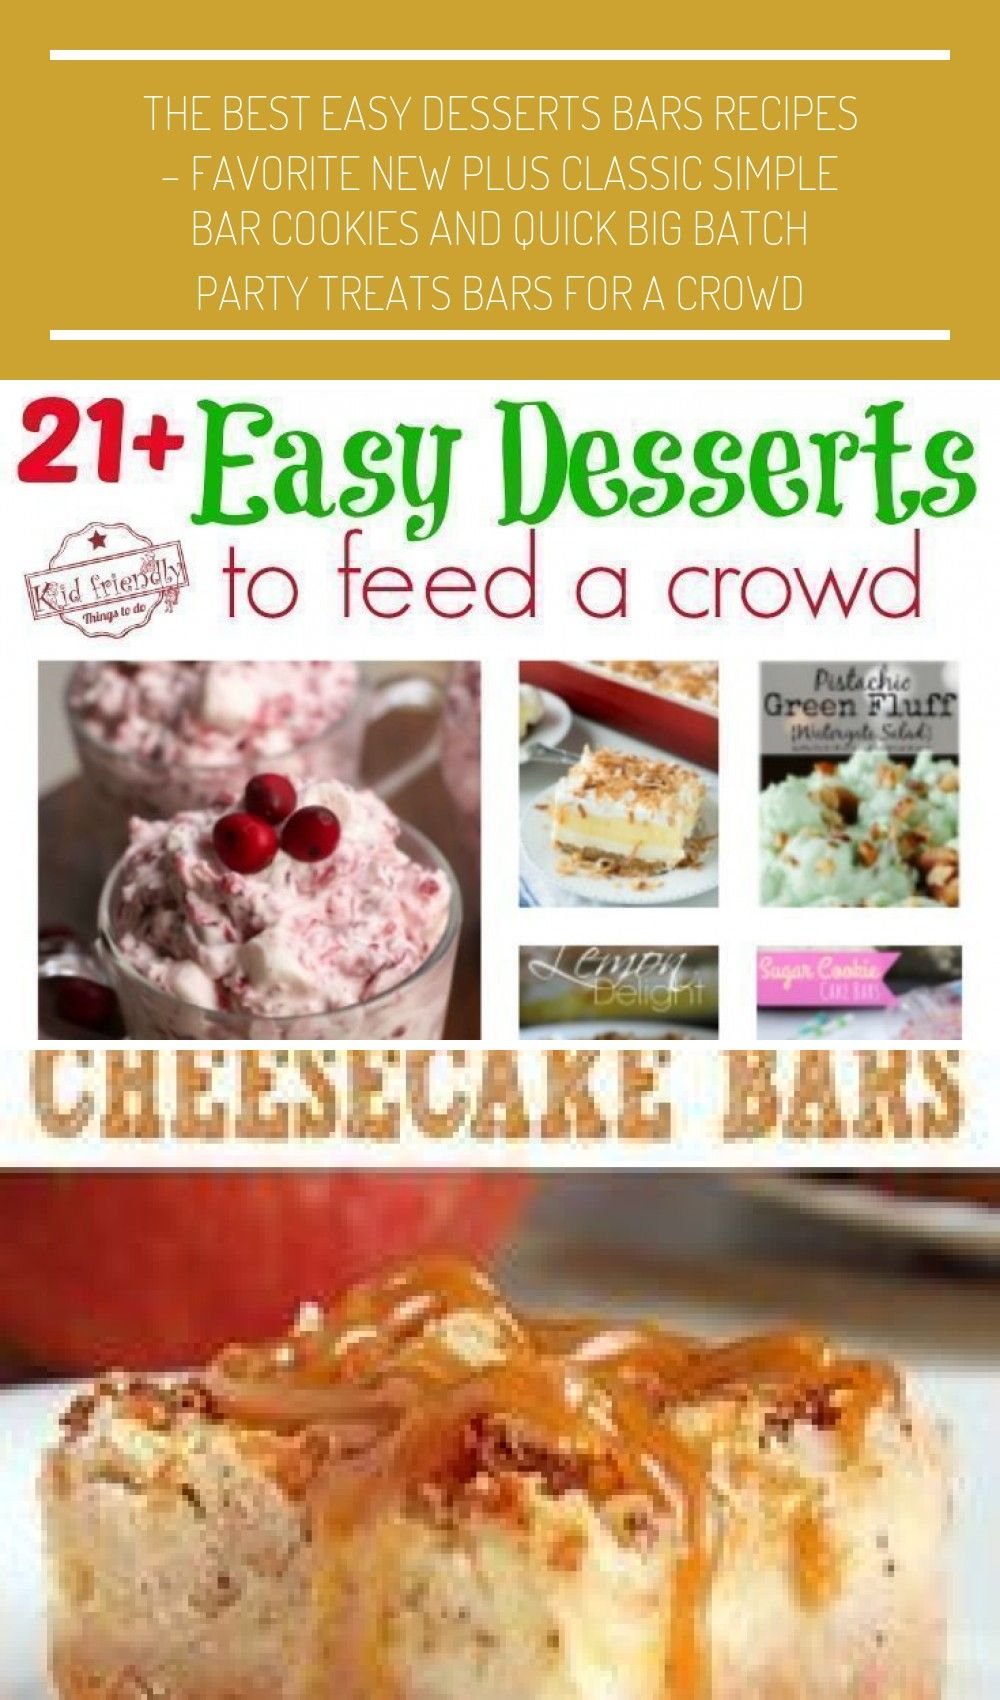 Easy Desserts that Will Feed a Crowd - Slab Pies, Sheet Cakes, Bars, Jello Salads and More! -Over 2